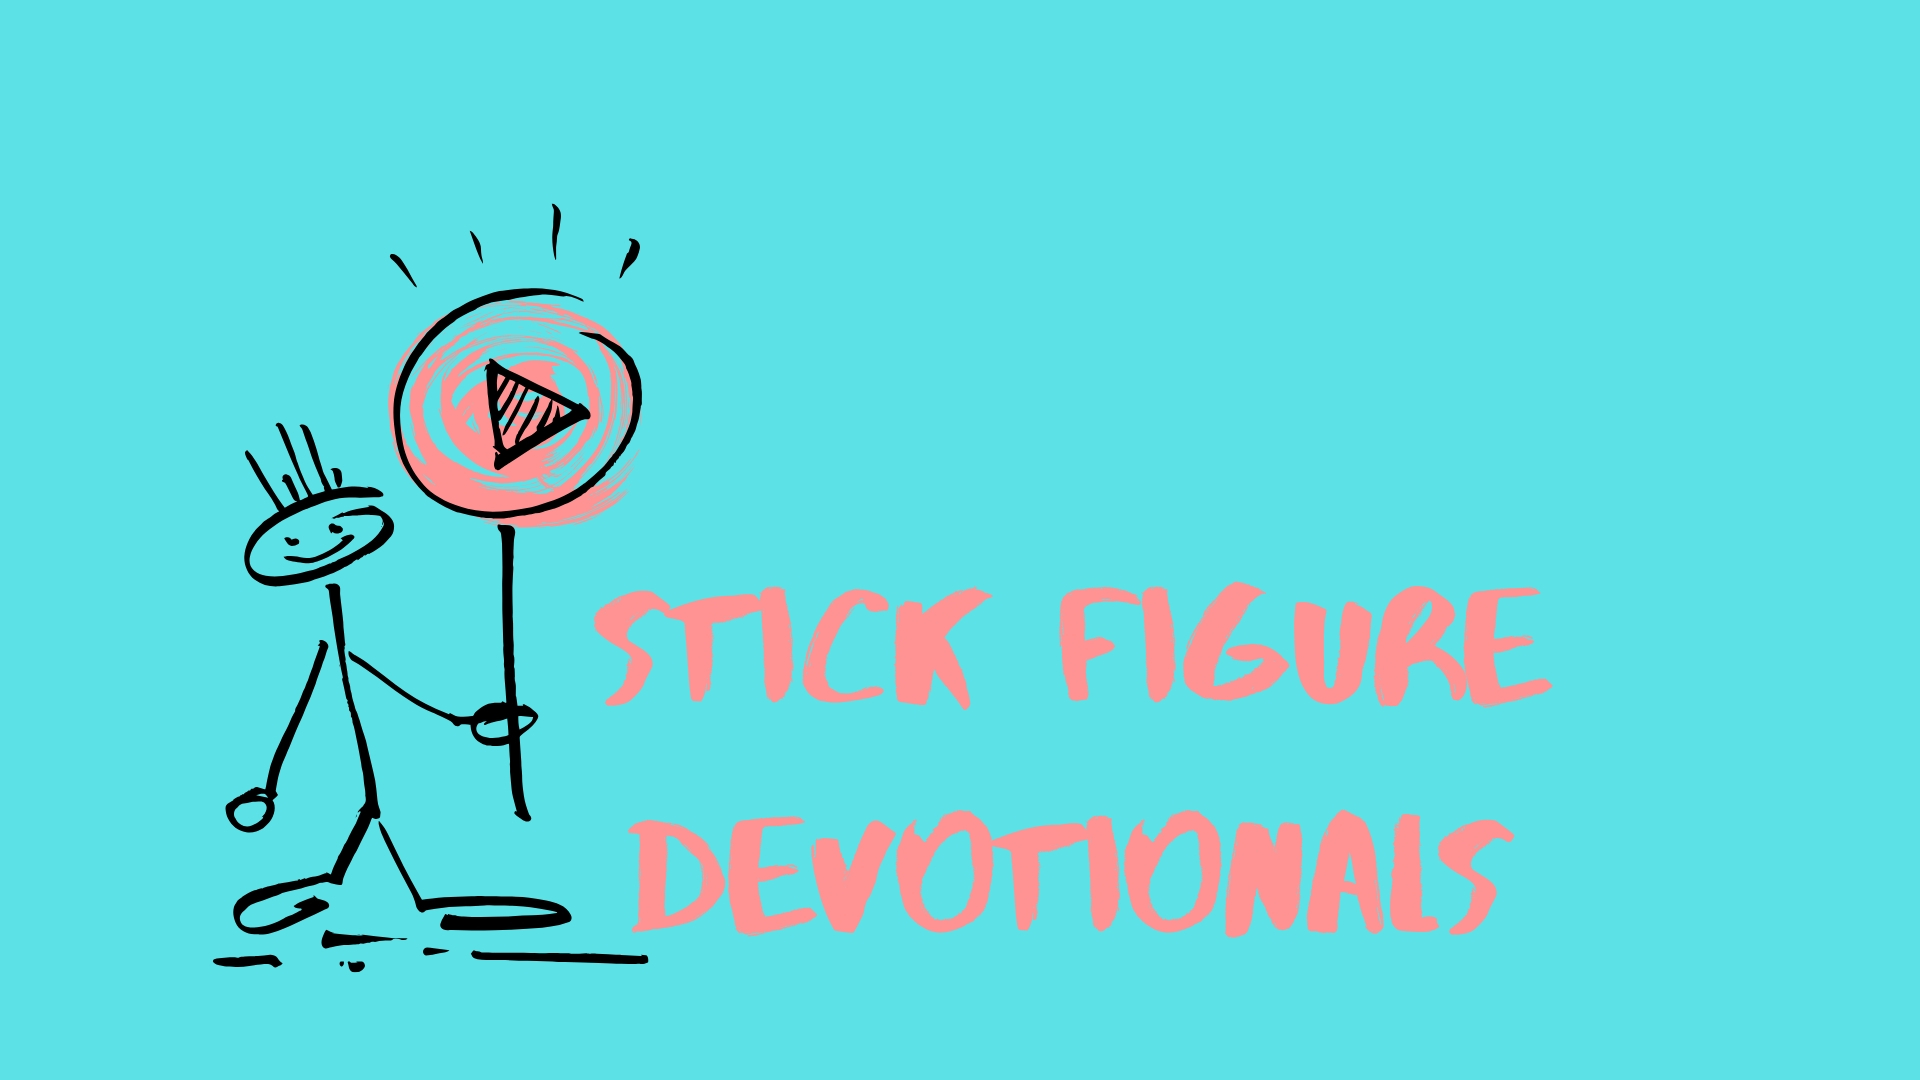 Copy of Stick Figure Devotionals.jpg